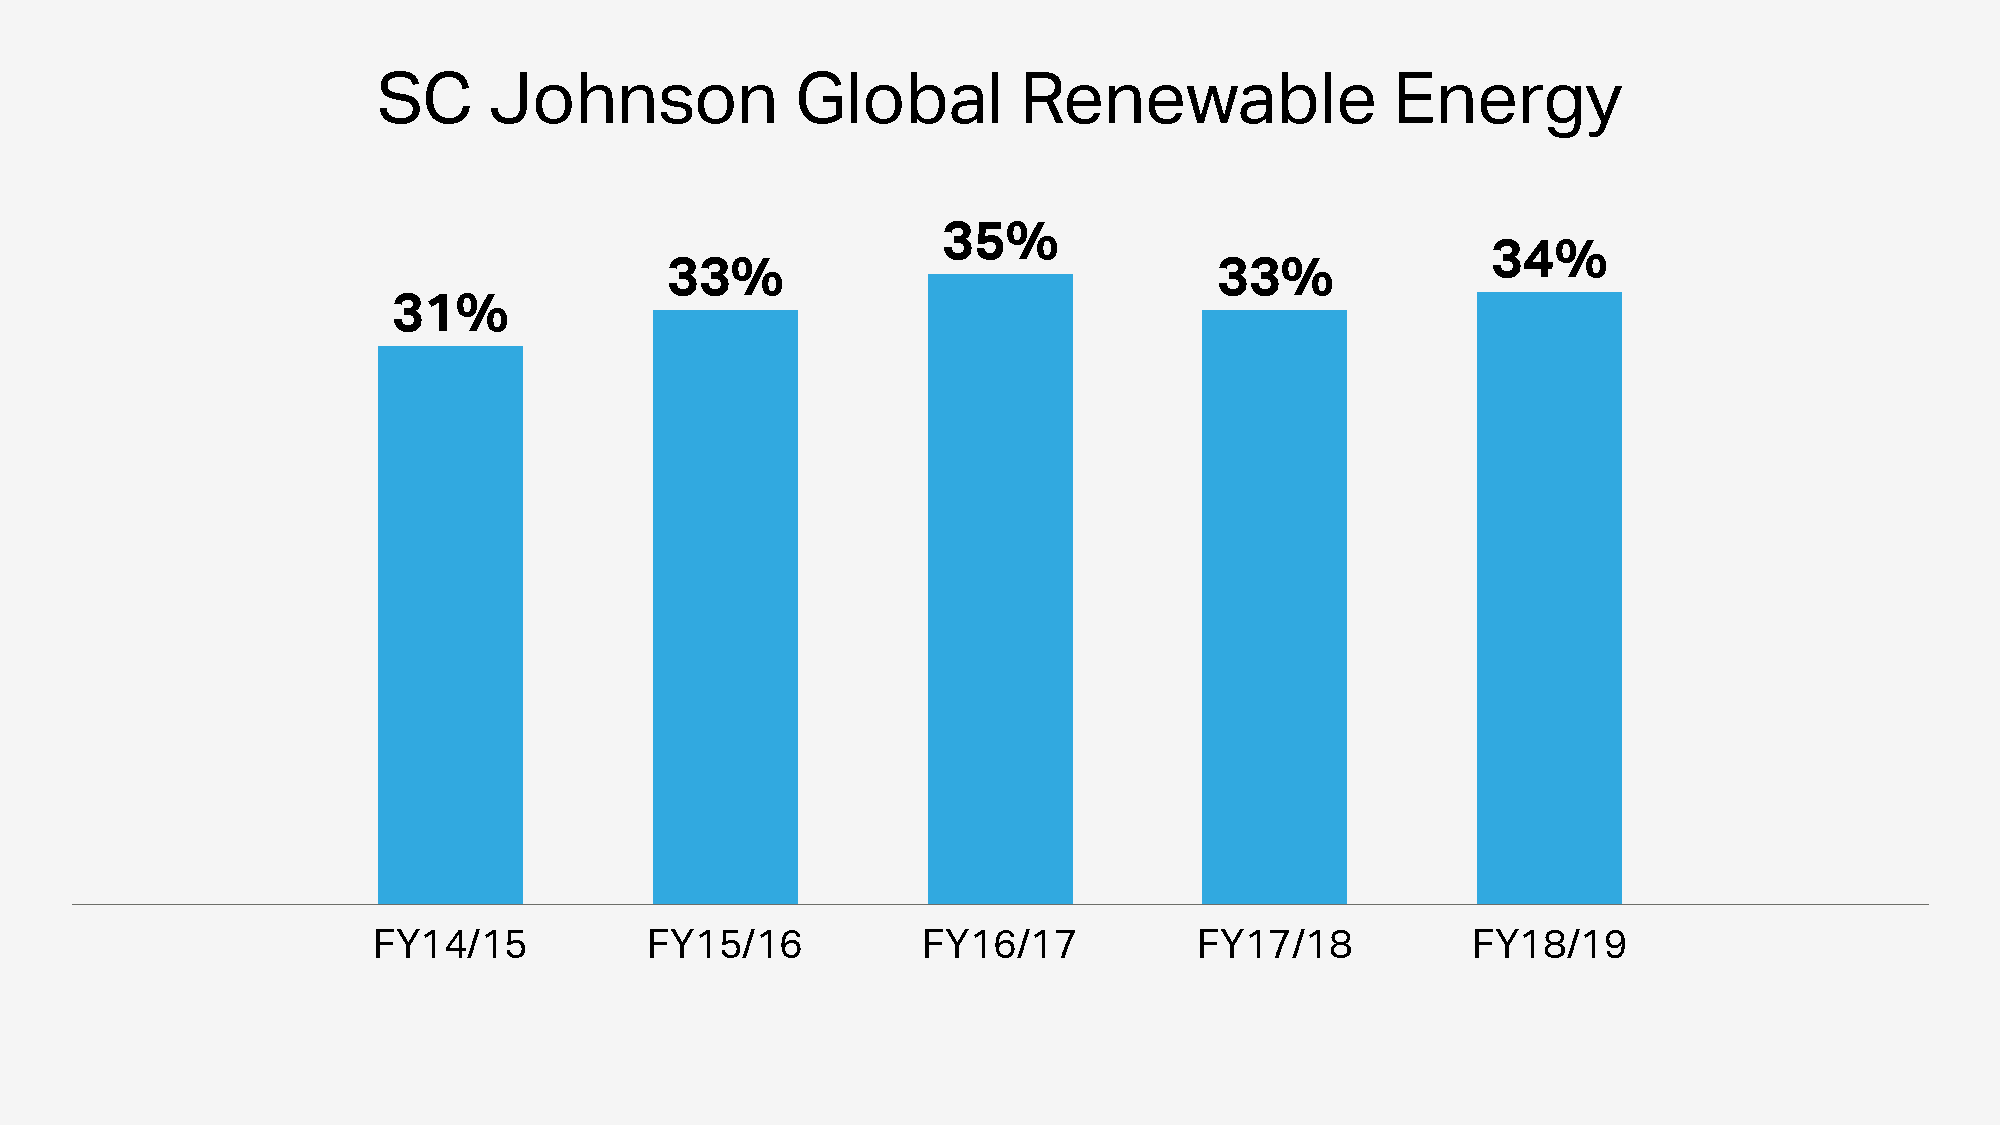 SC Johnson Renewable Energy